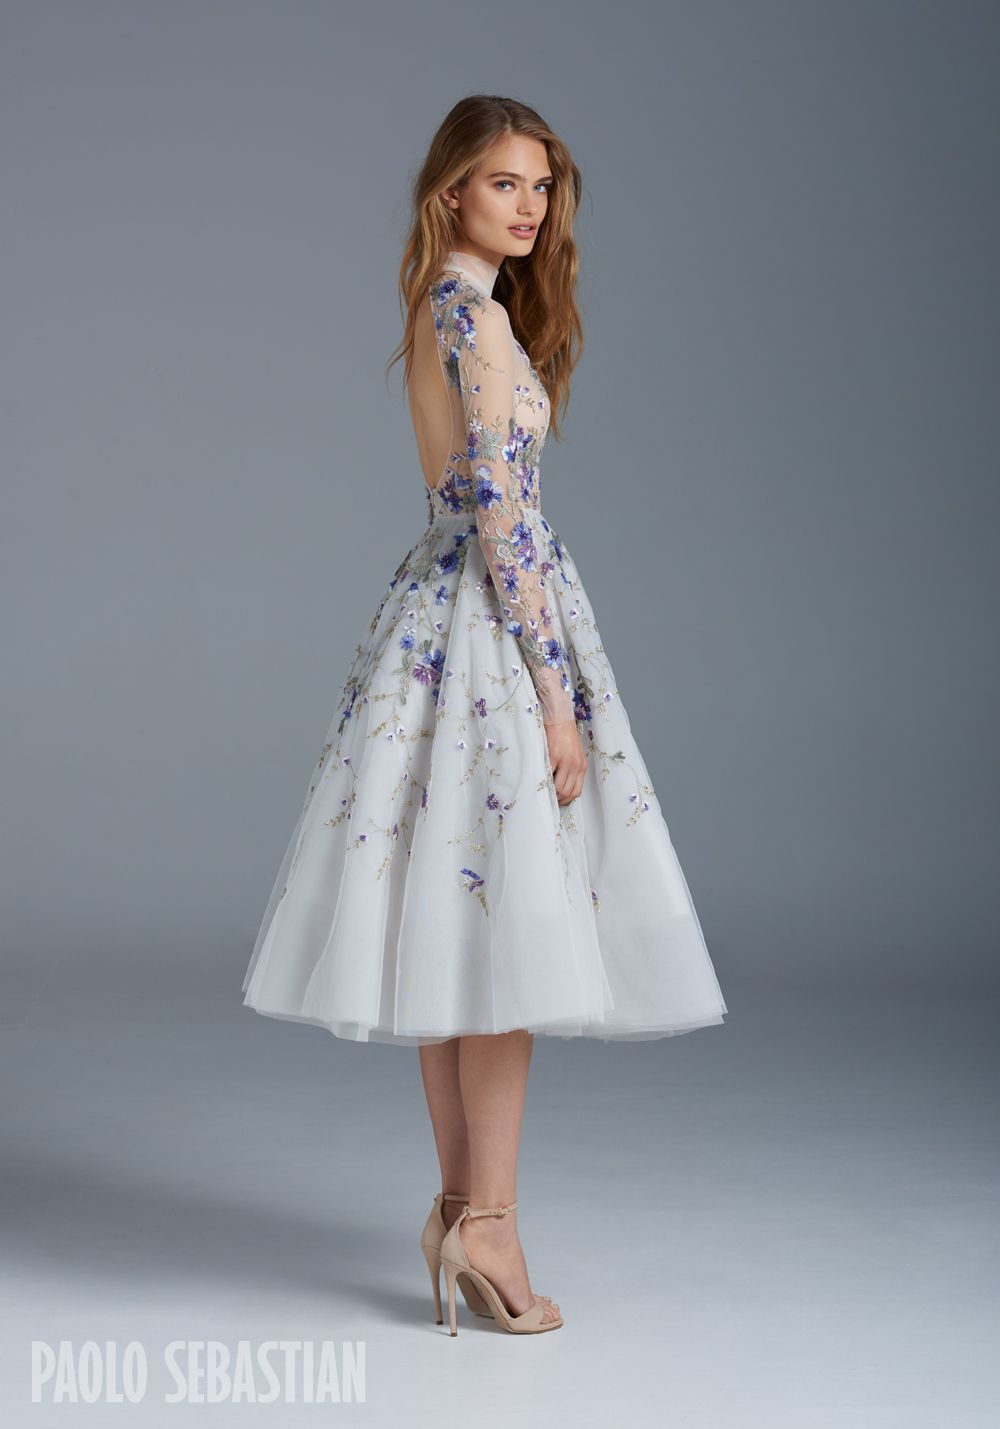 Psss illusion tulle ballerina gown with floral embroideries